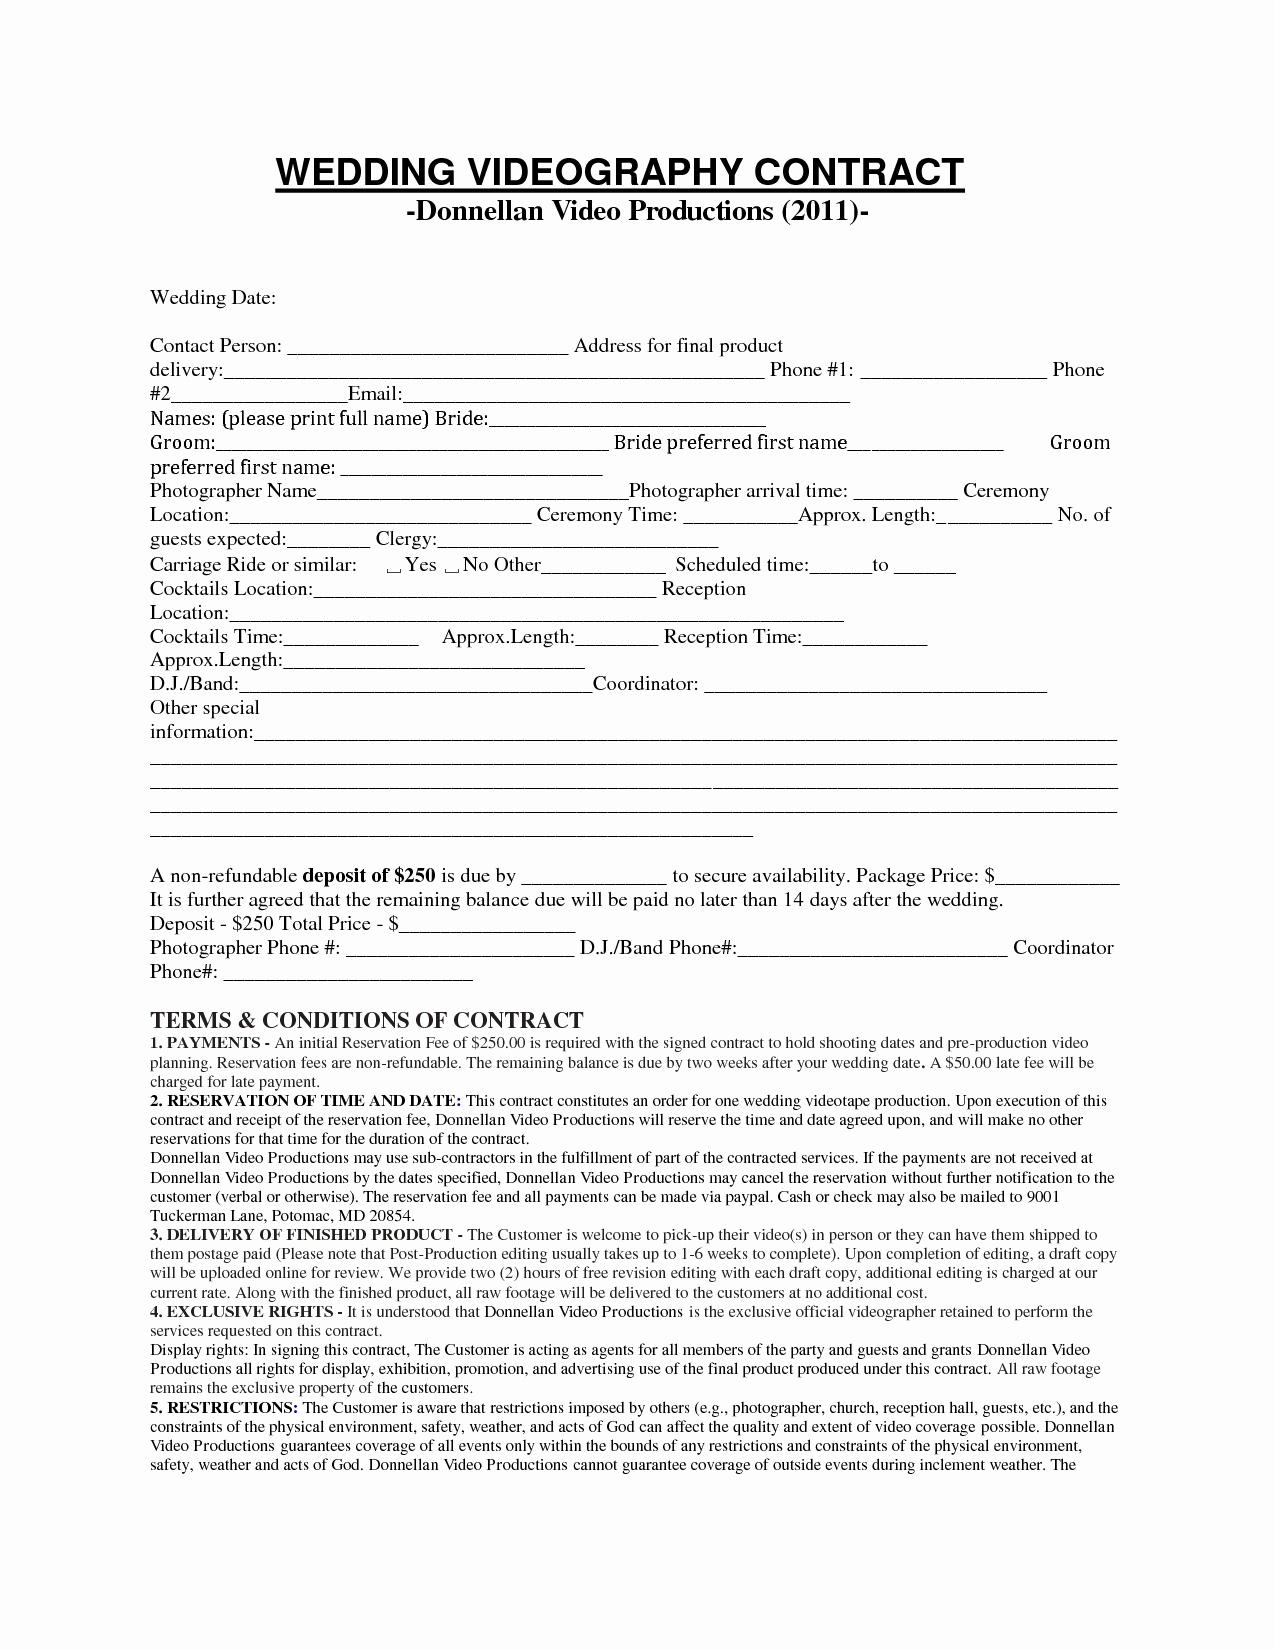 Videography Contract Template Free Lovely Videography Contract Template Free Printable Documents